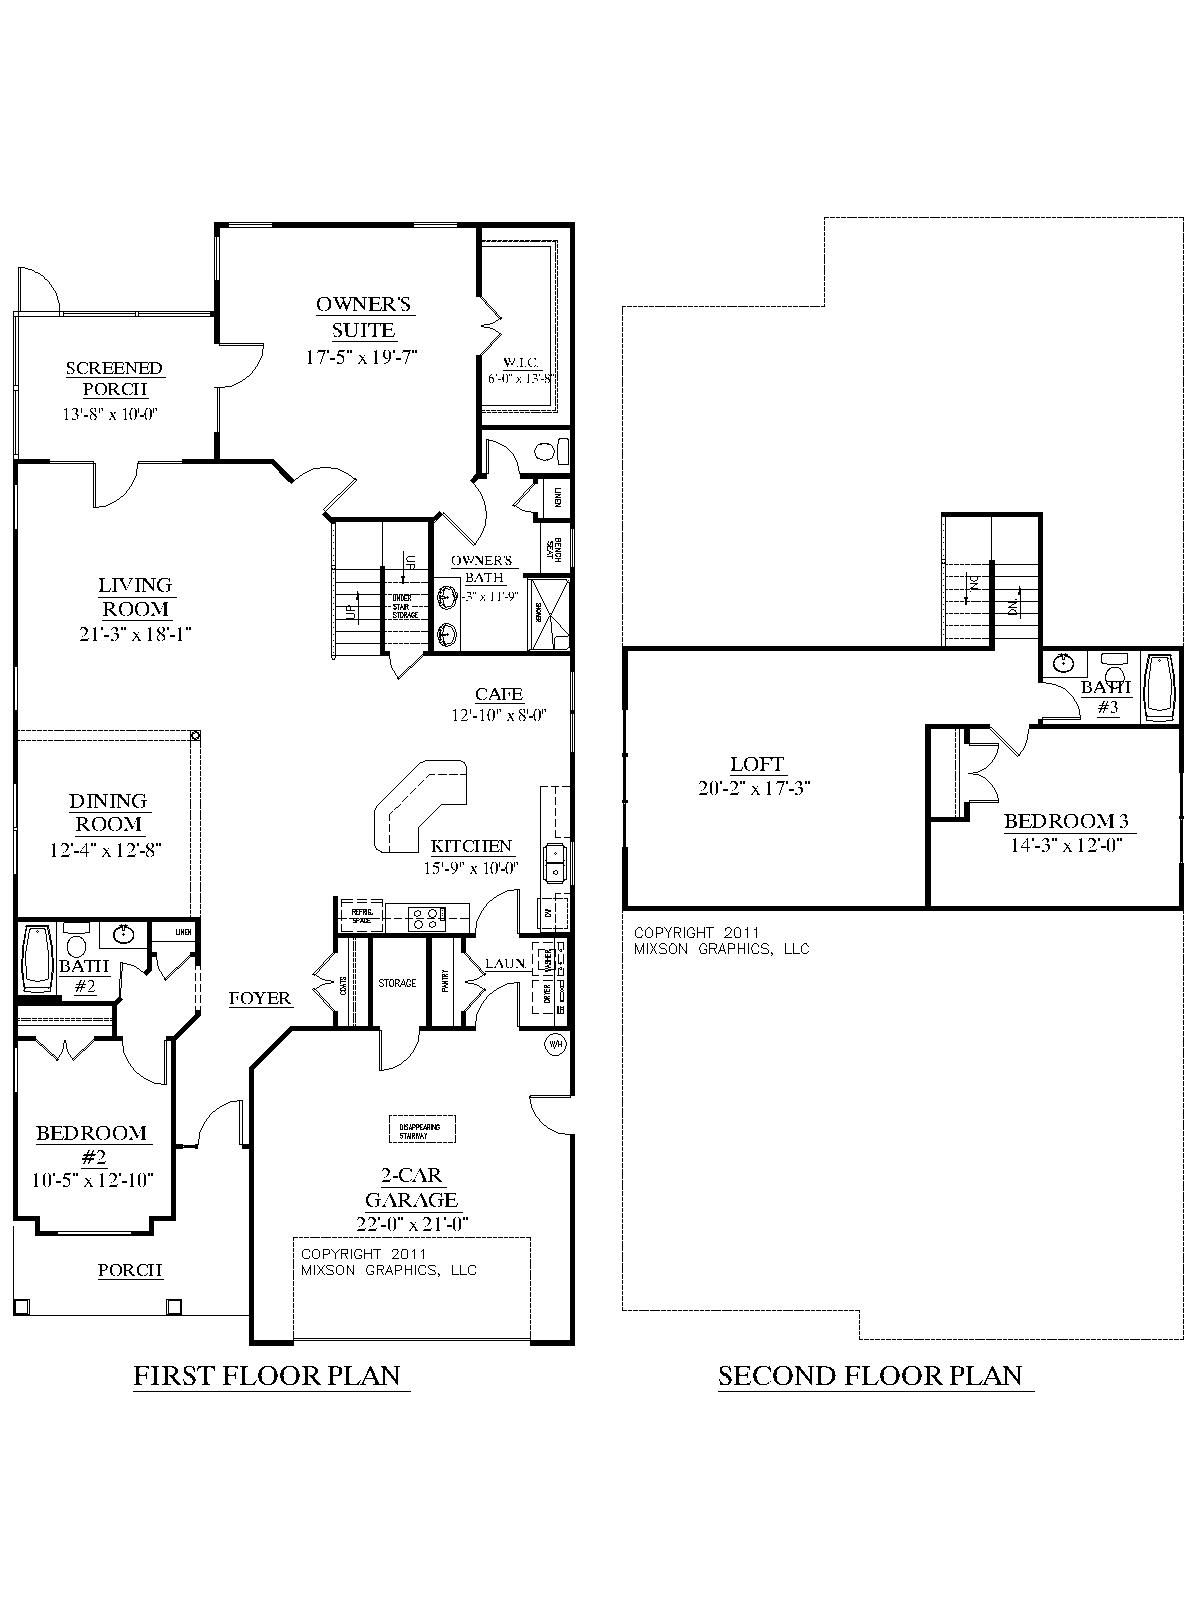 House plan 2755 woodbridge floor plan traditional 1 1 2 for Upstairs plans